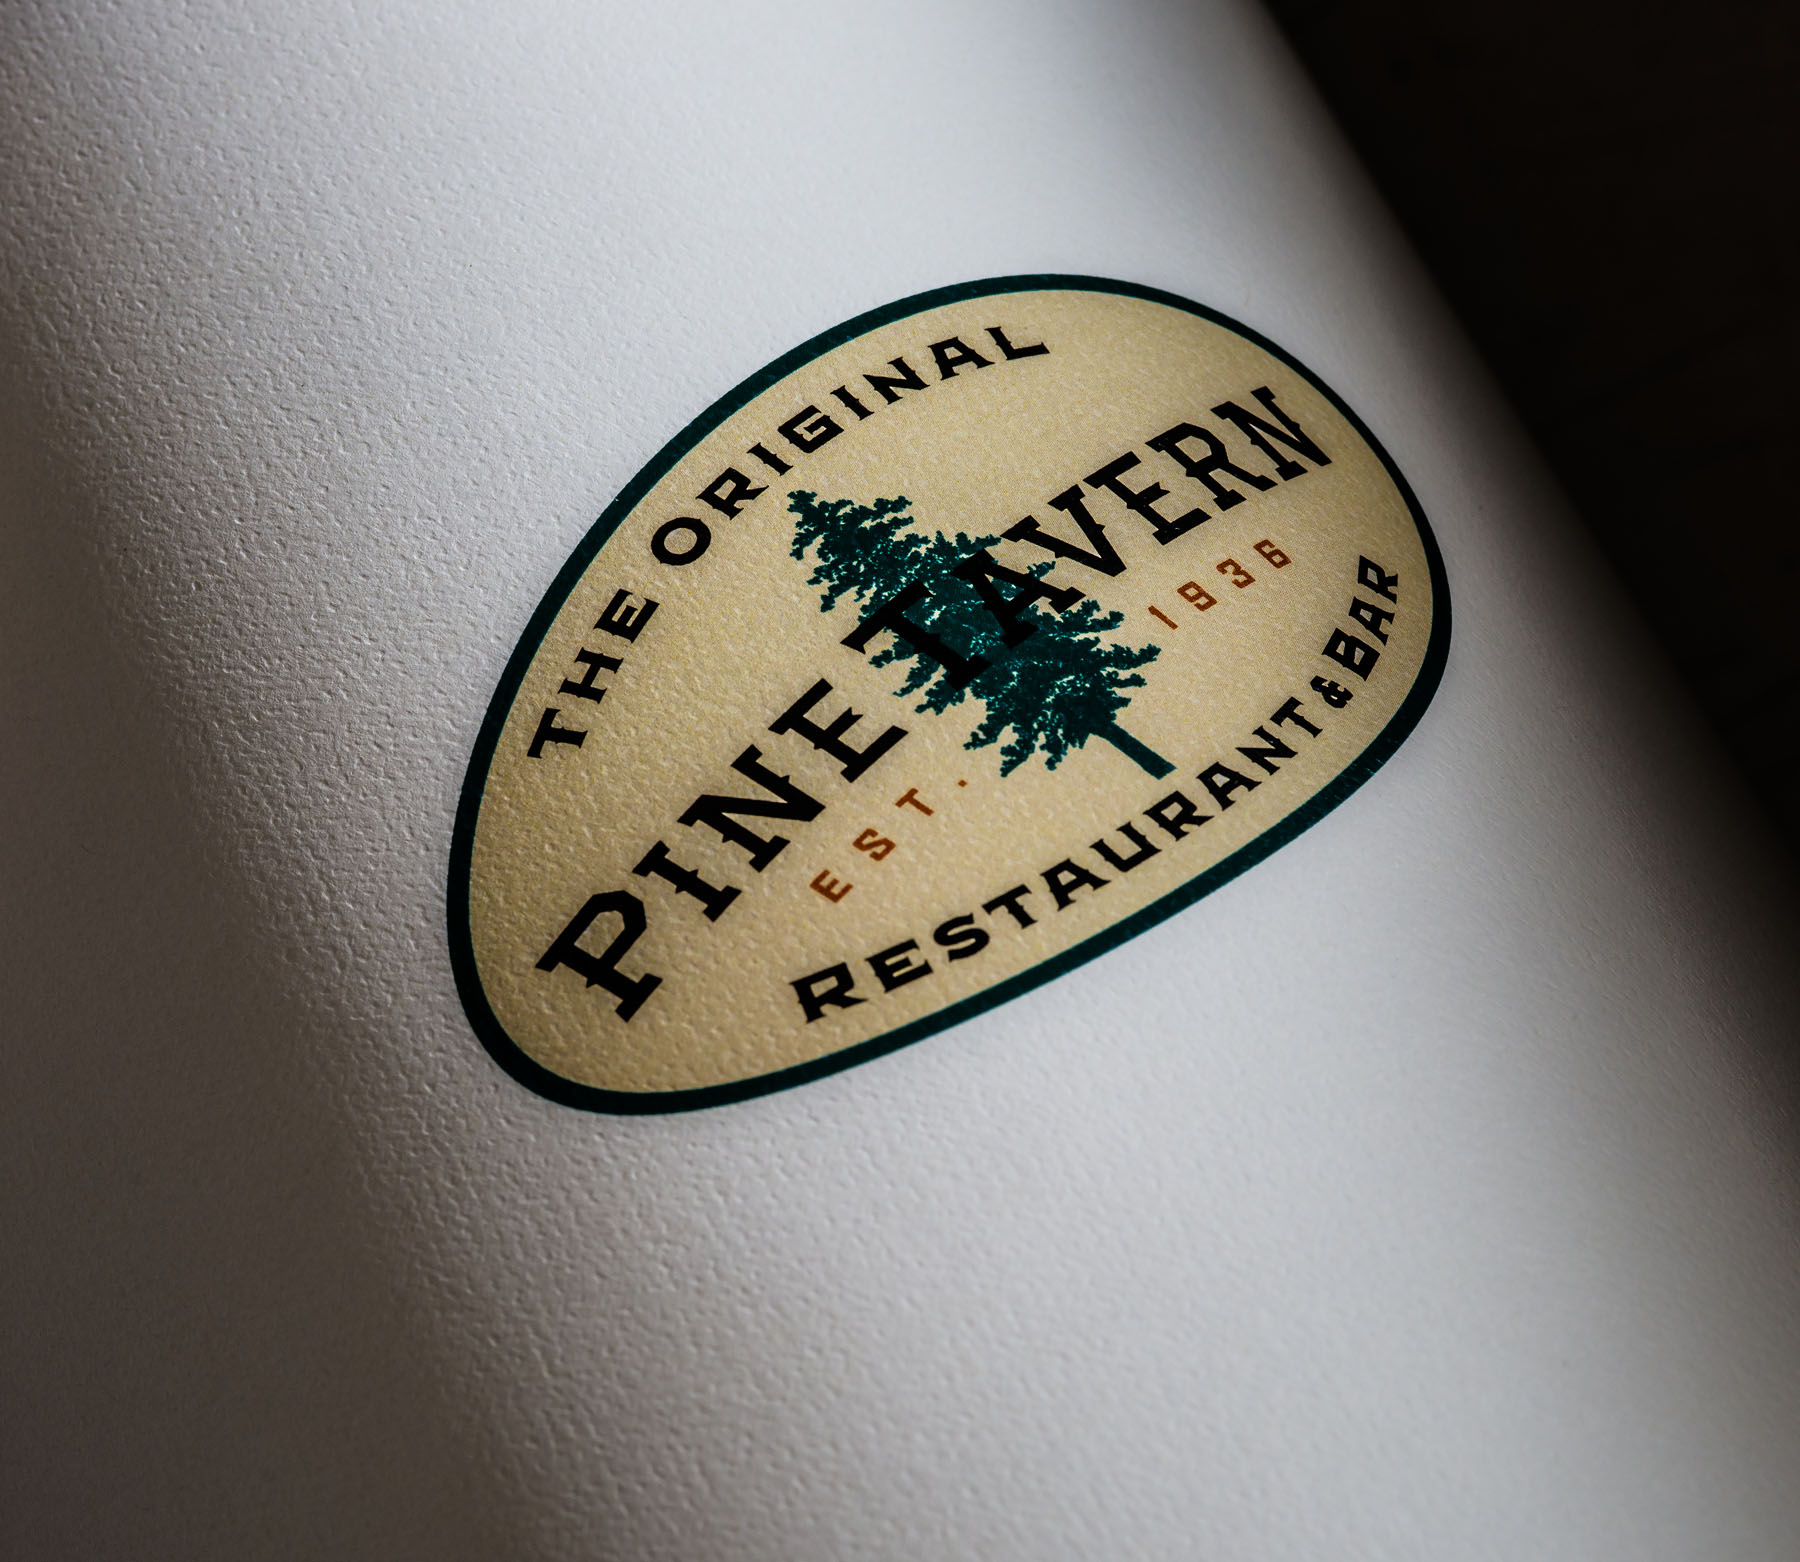 PINE TAVERN RESTAURANT AND BAR